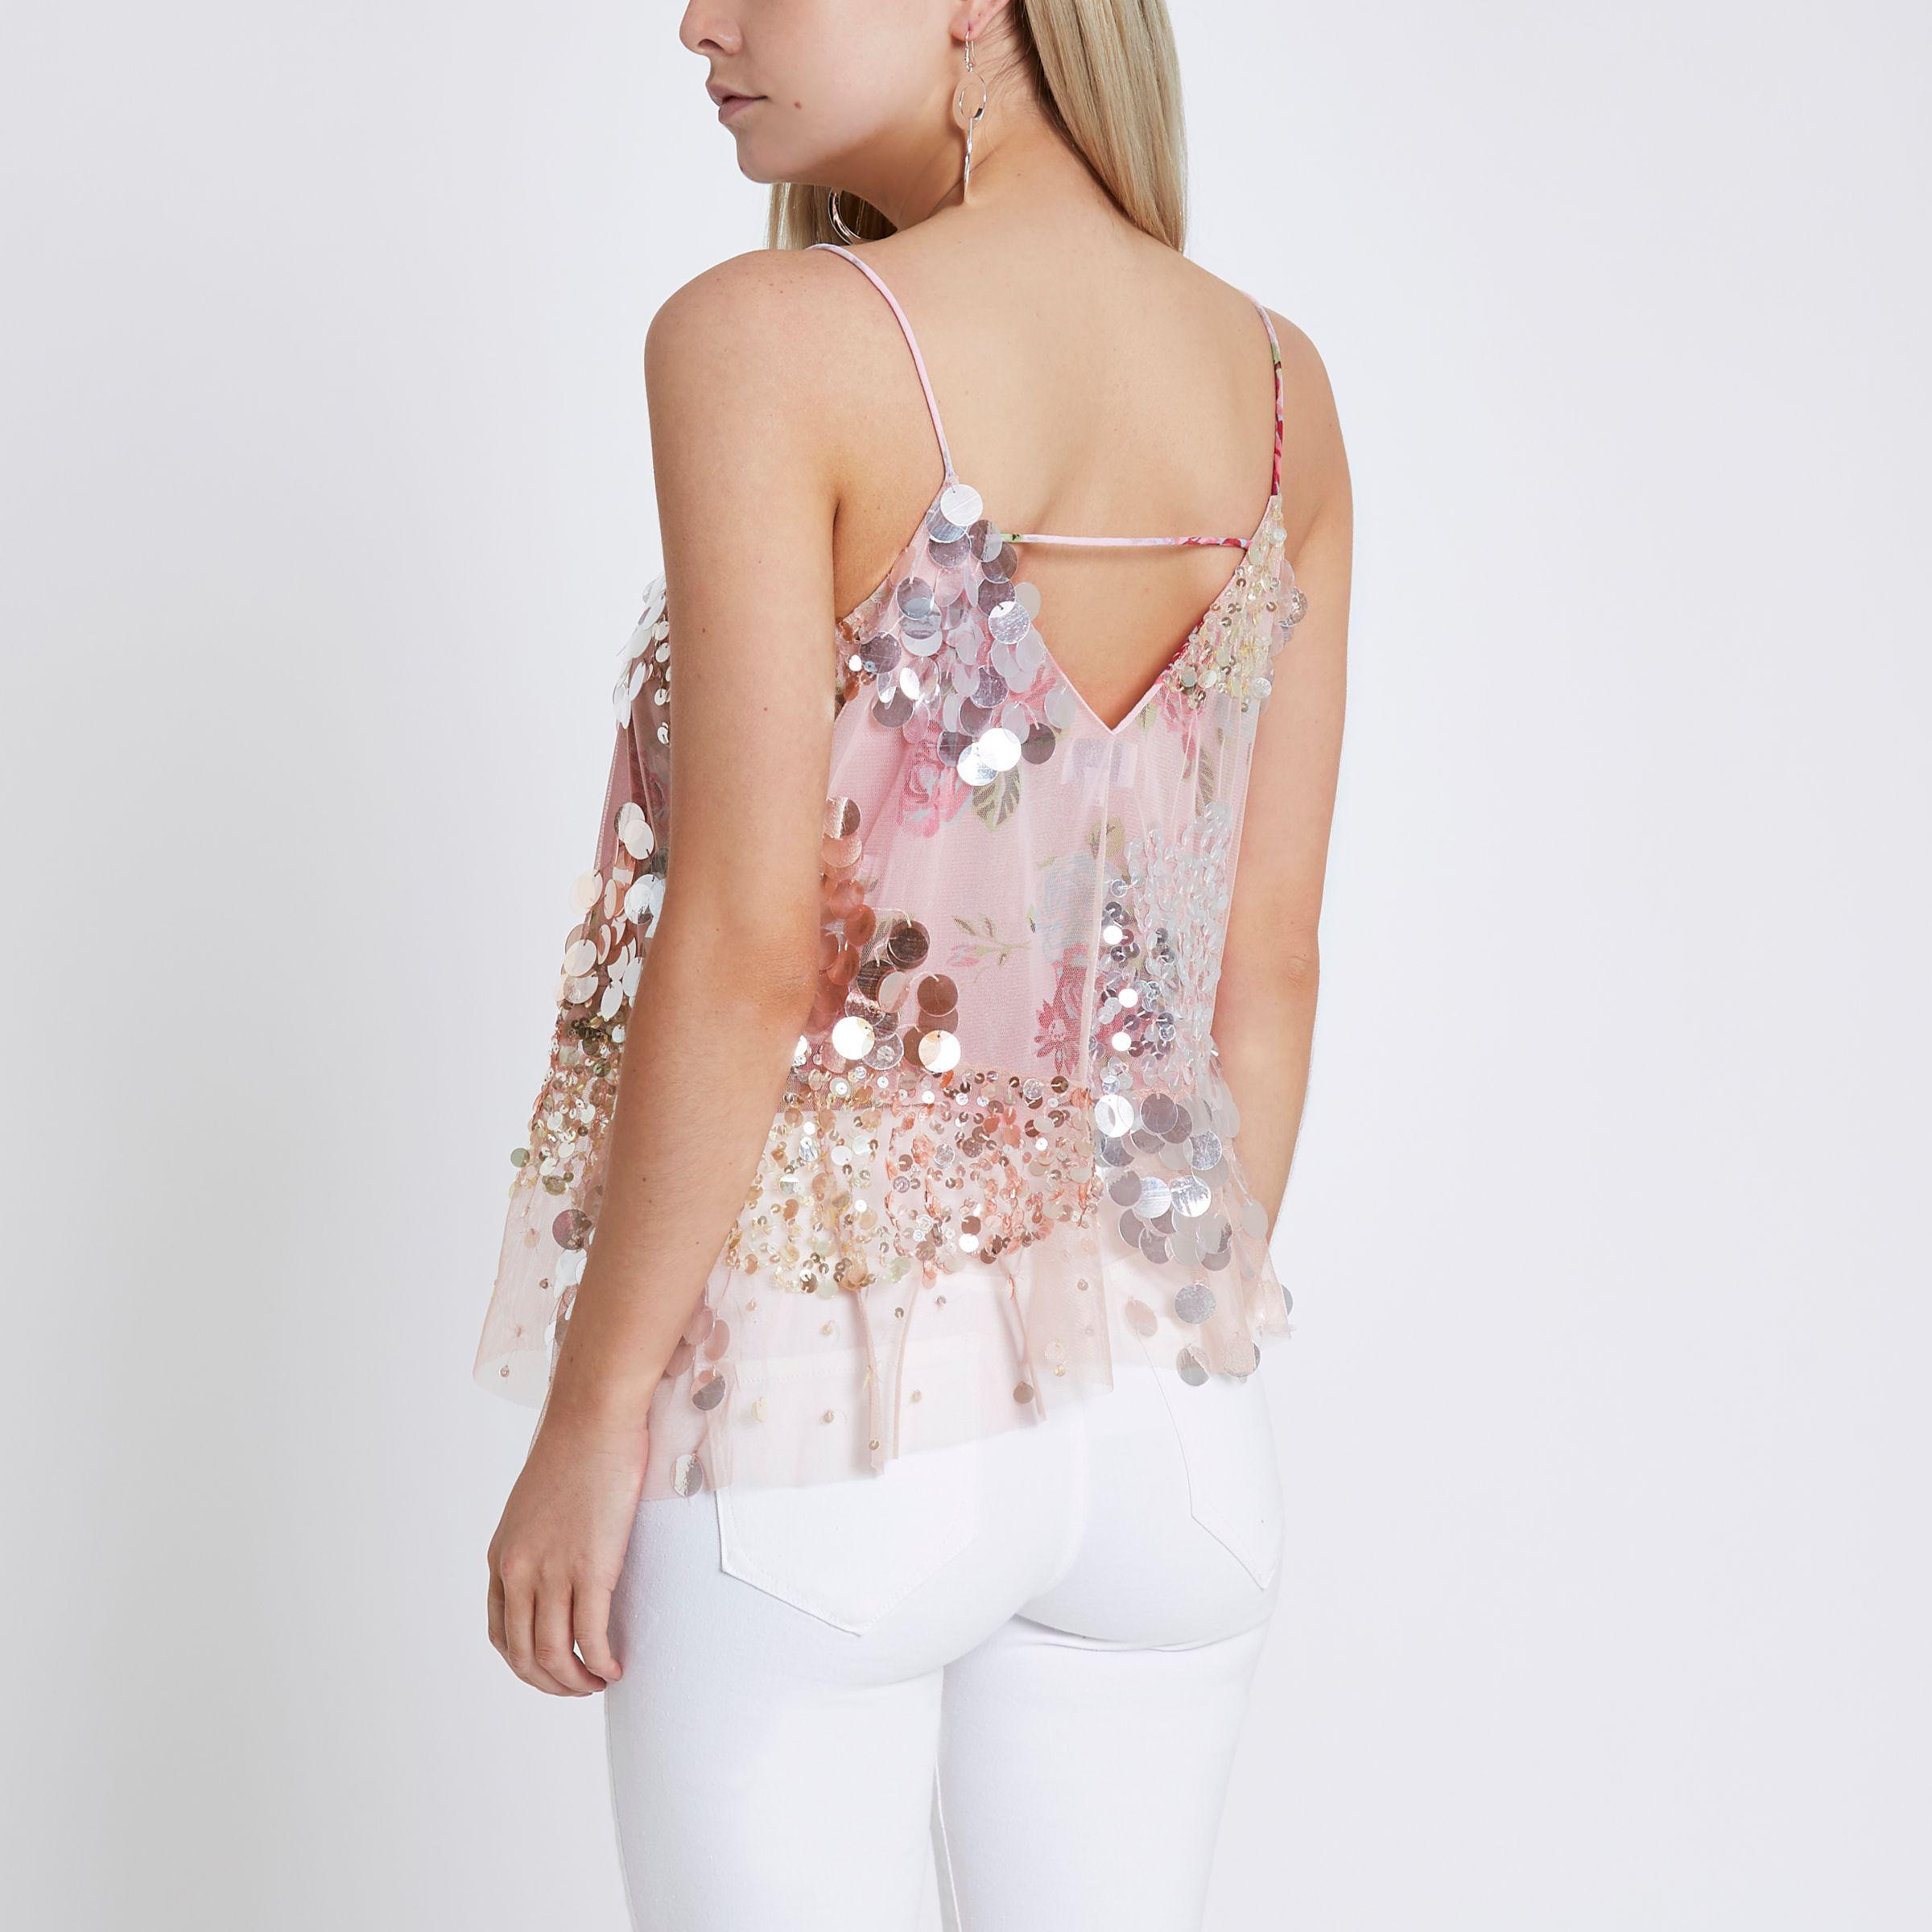 46b18d9c06613d River Island Petite Pink Sequin Embellished Cami Top in Pink - Lyst